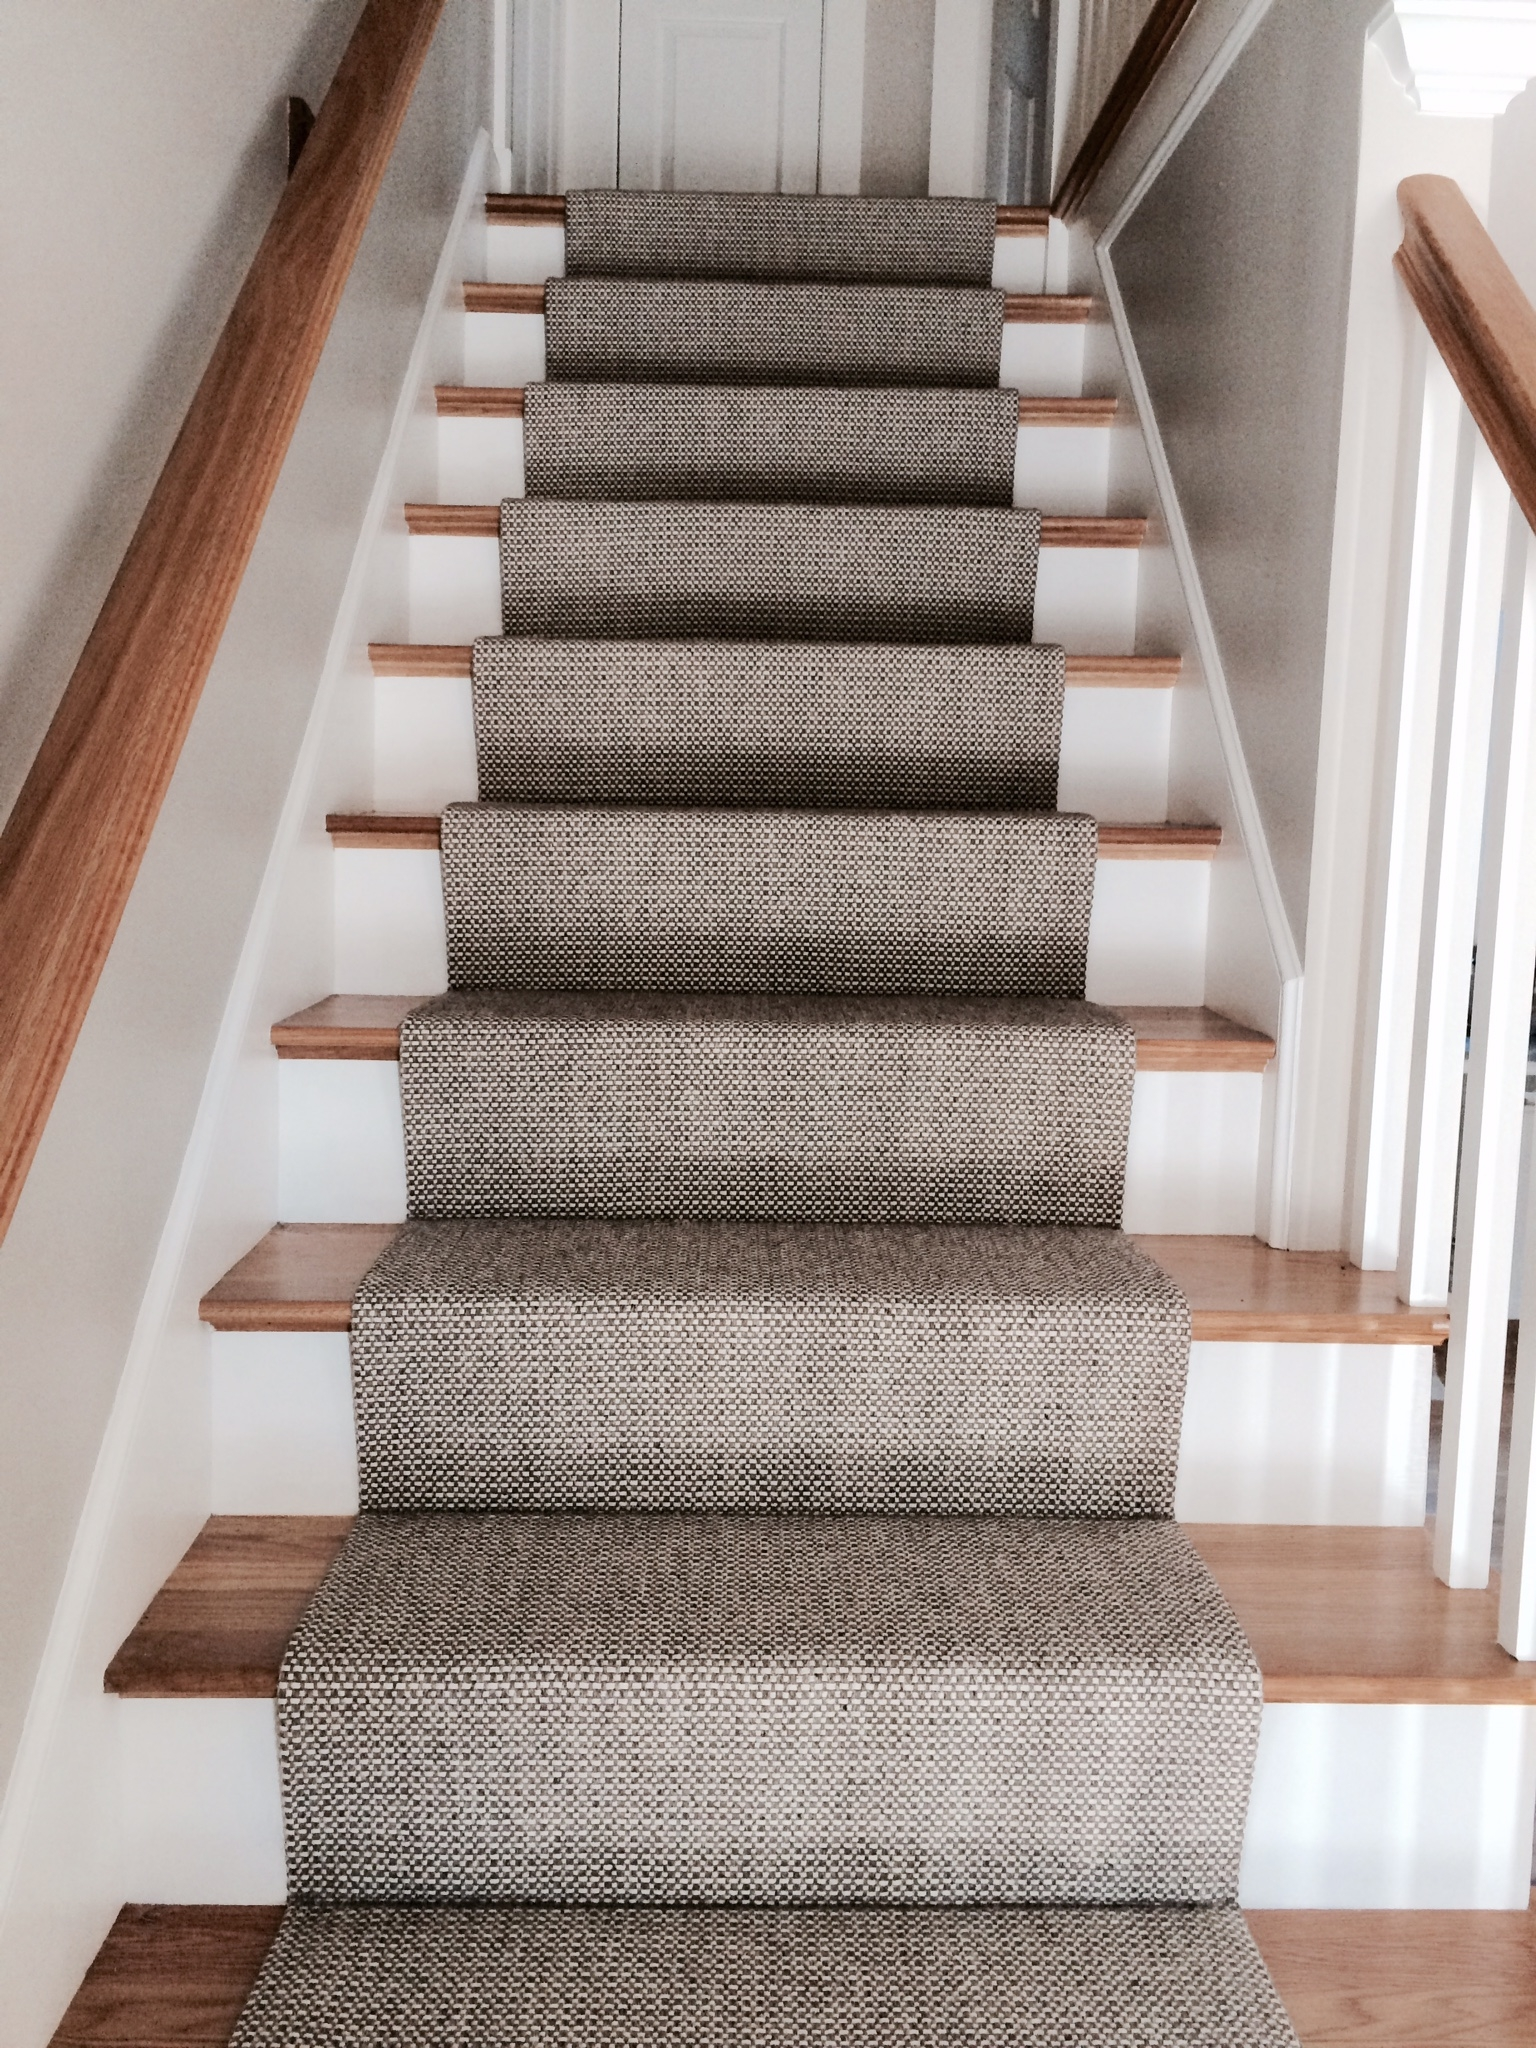 Inspiration about Merida Flat Woven Wool Stair Runner The Carpet Workroom The Intended For Rug Runners For Stairs (#4 of 20)